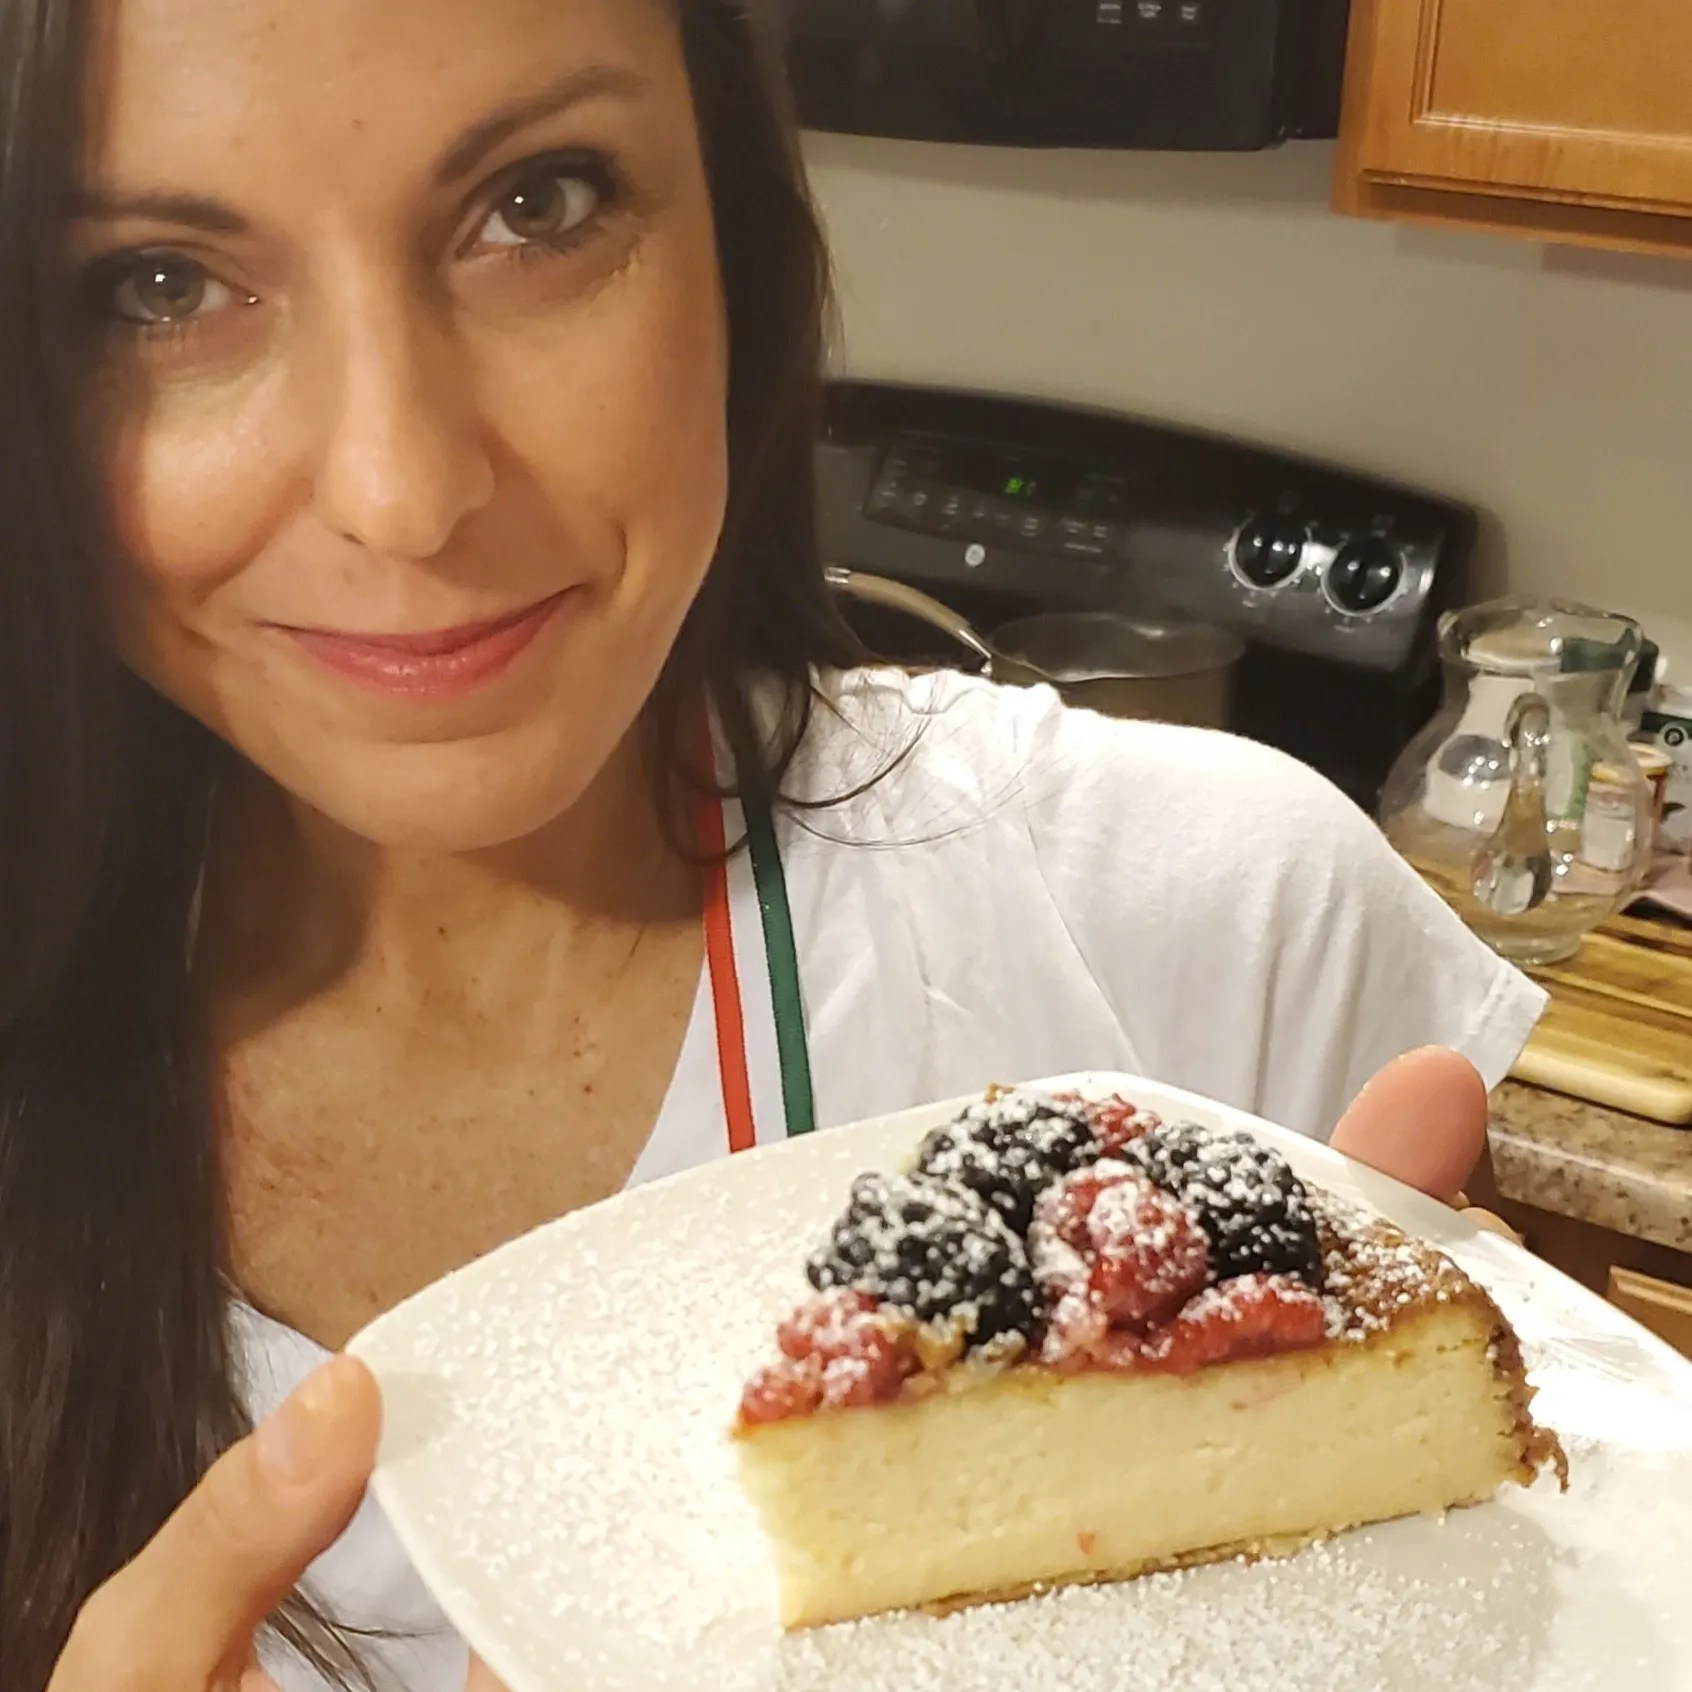 Cheesecake Recipes Italian Dishes And Tutorials La Cucina Italiana